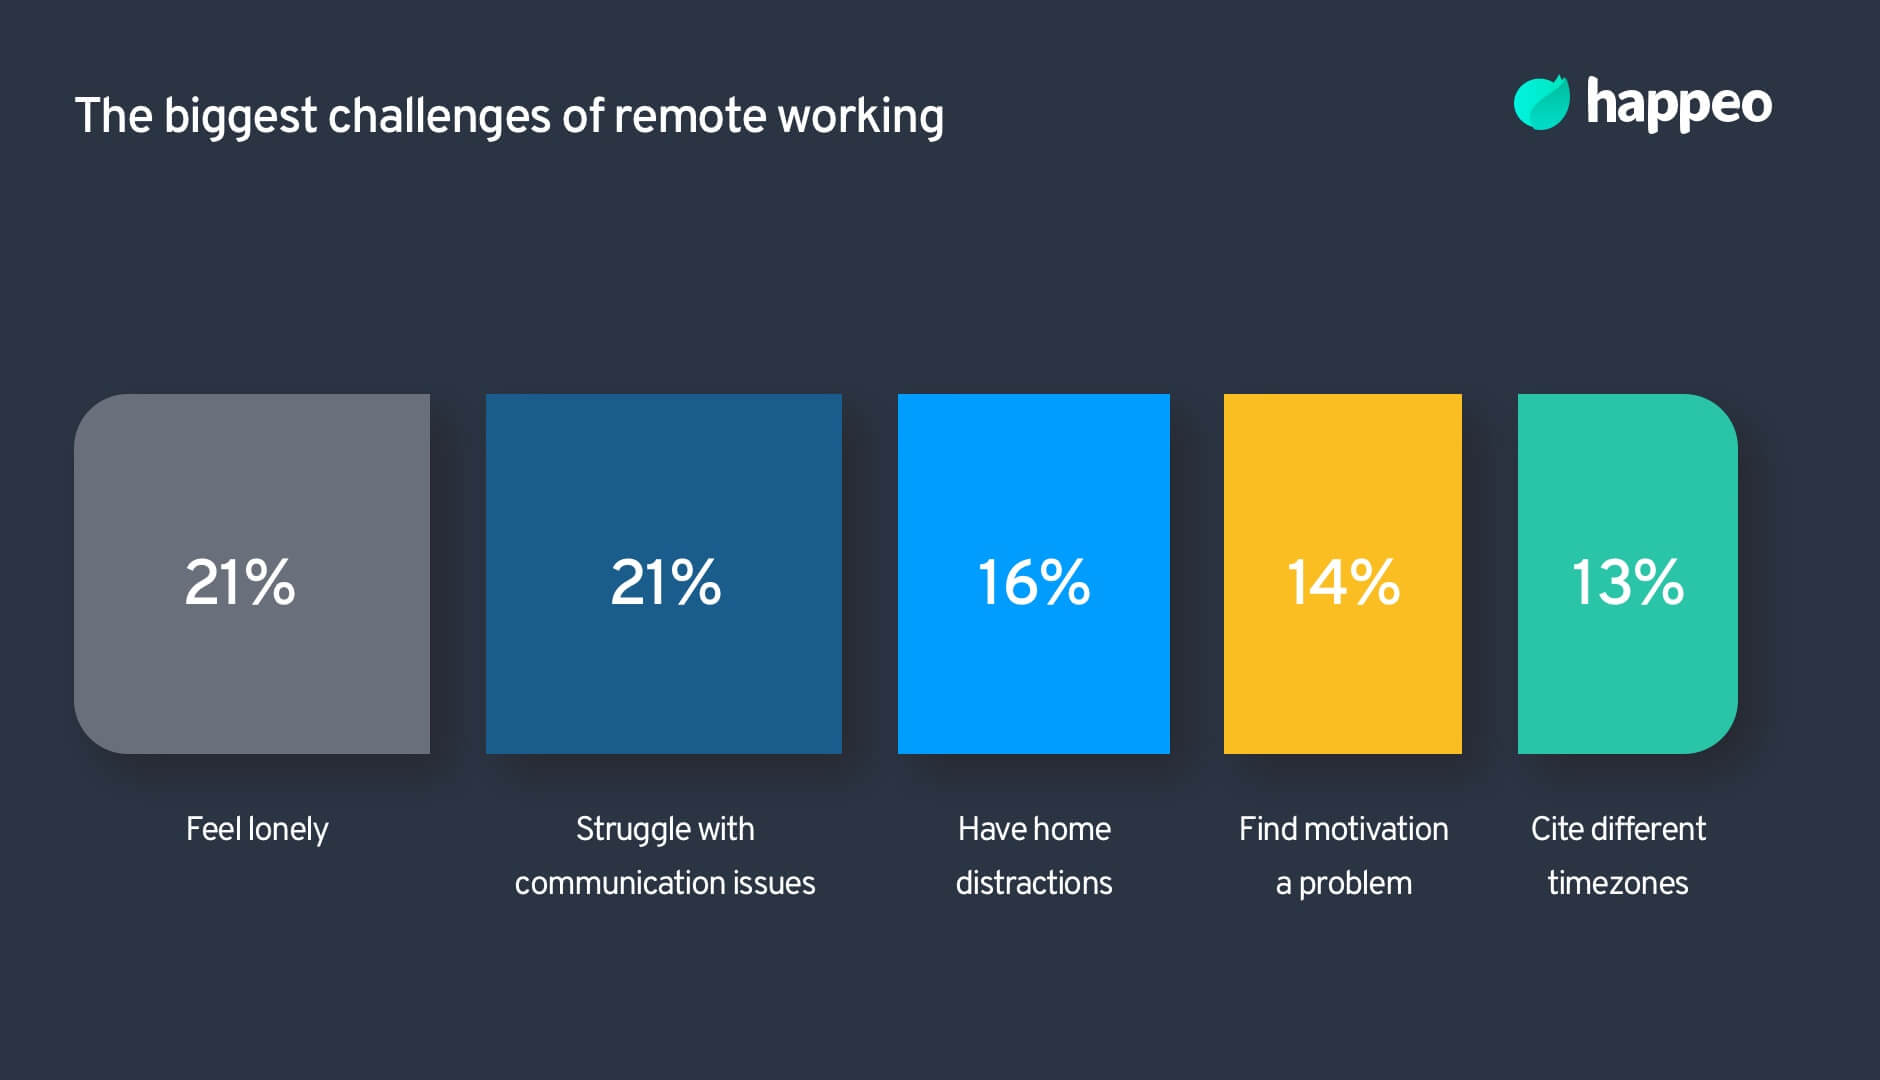 challenges of remote working